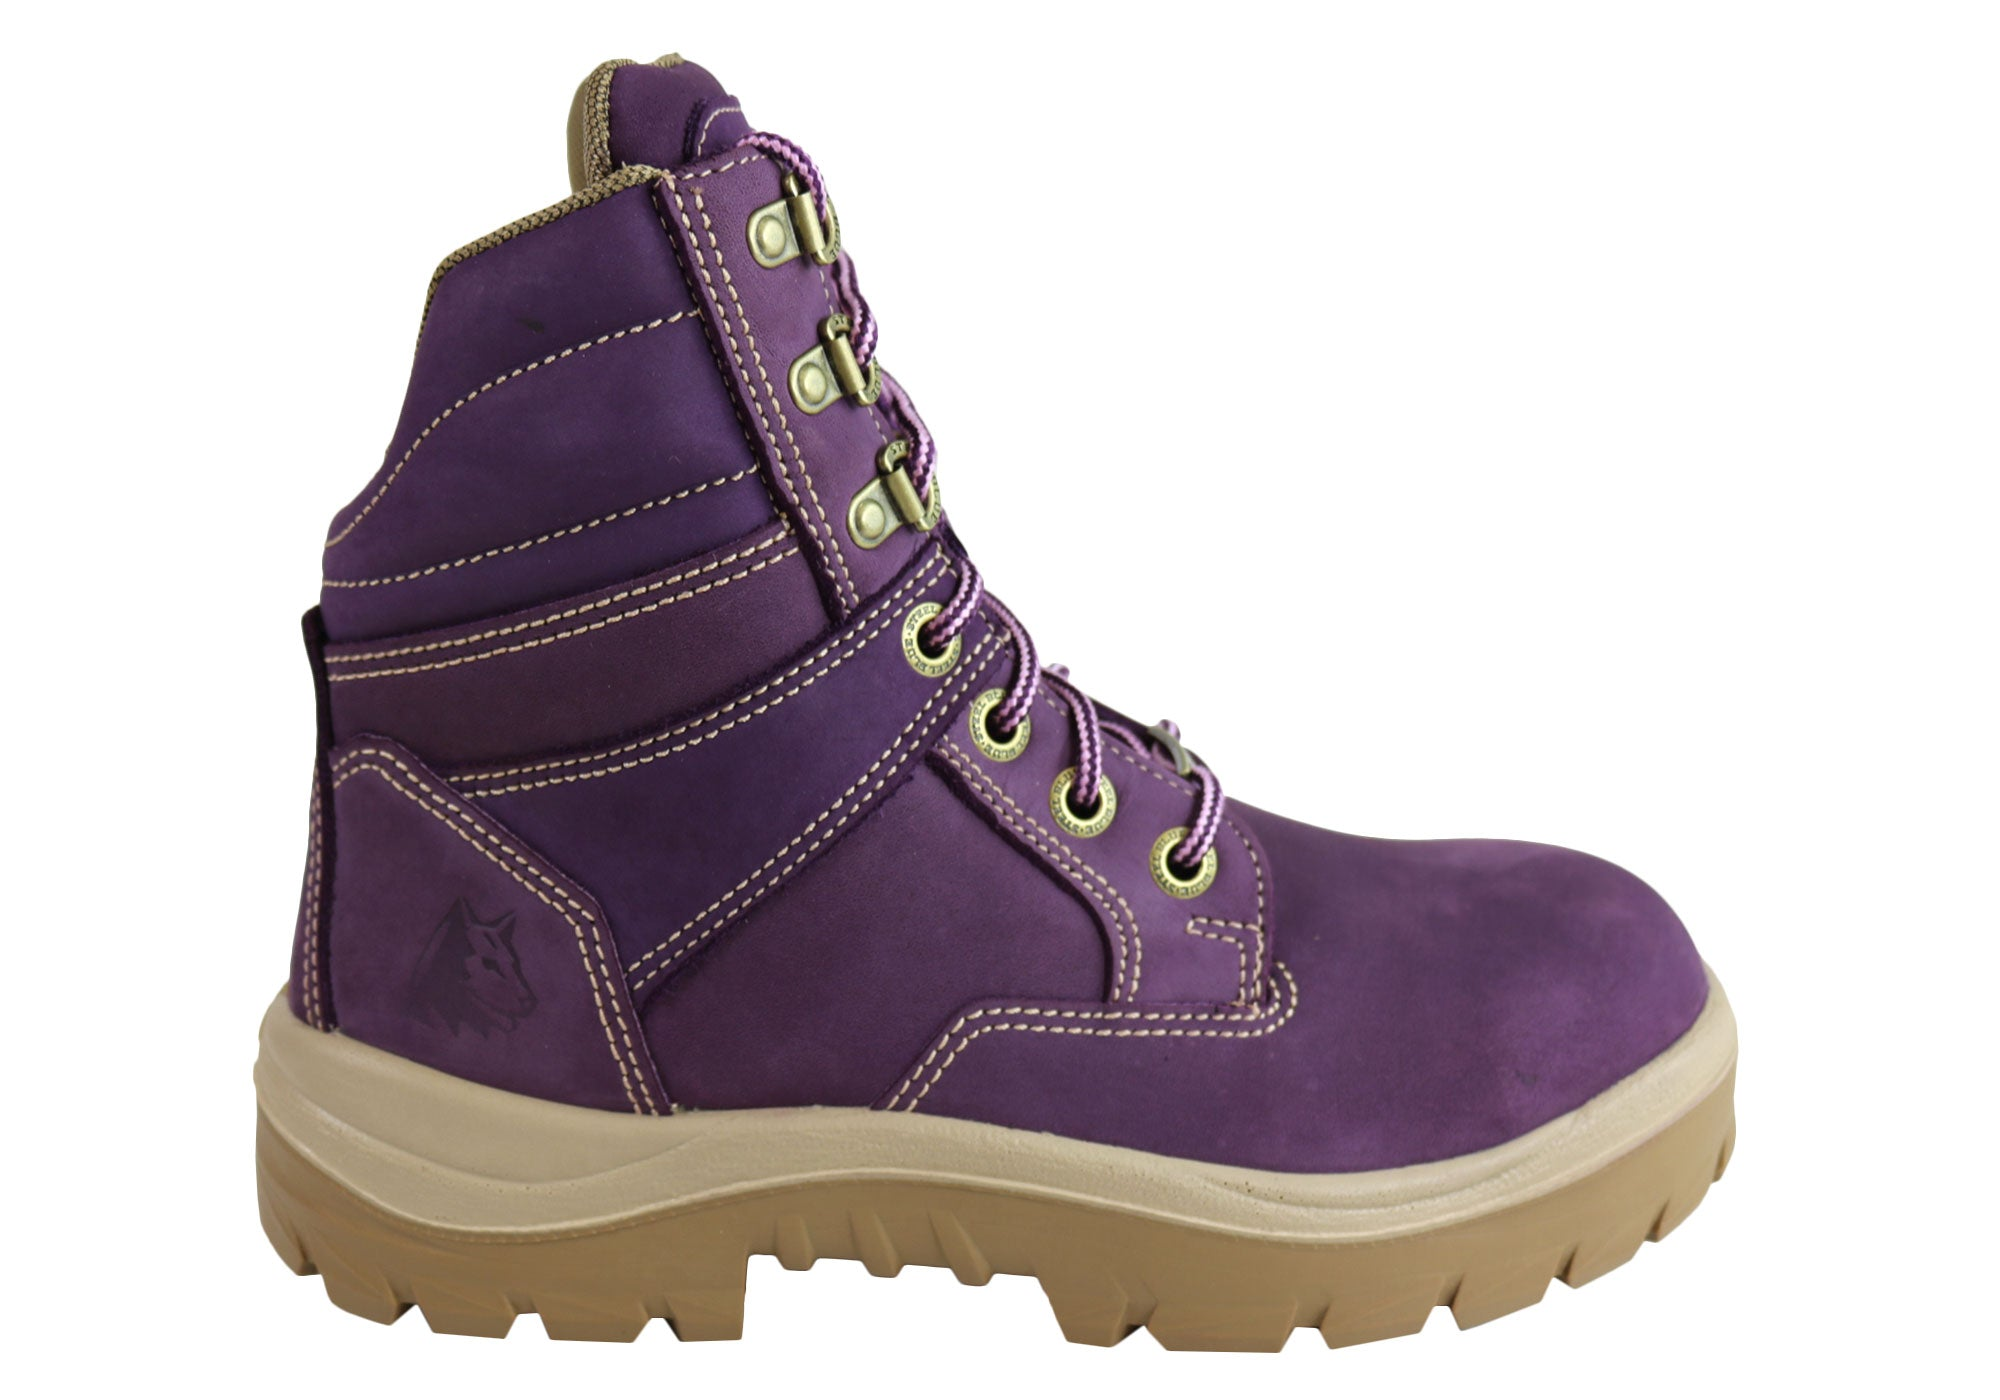 fdc590924a0 Details about NEW STEEL BLUE WOMENS 522760 & 522761 SOUTHERN CROSS STEEL  TOE WORK BOOTS